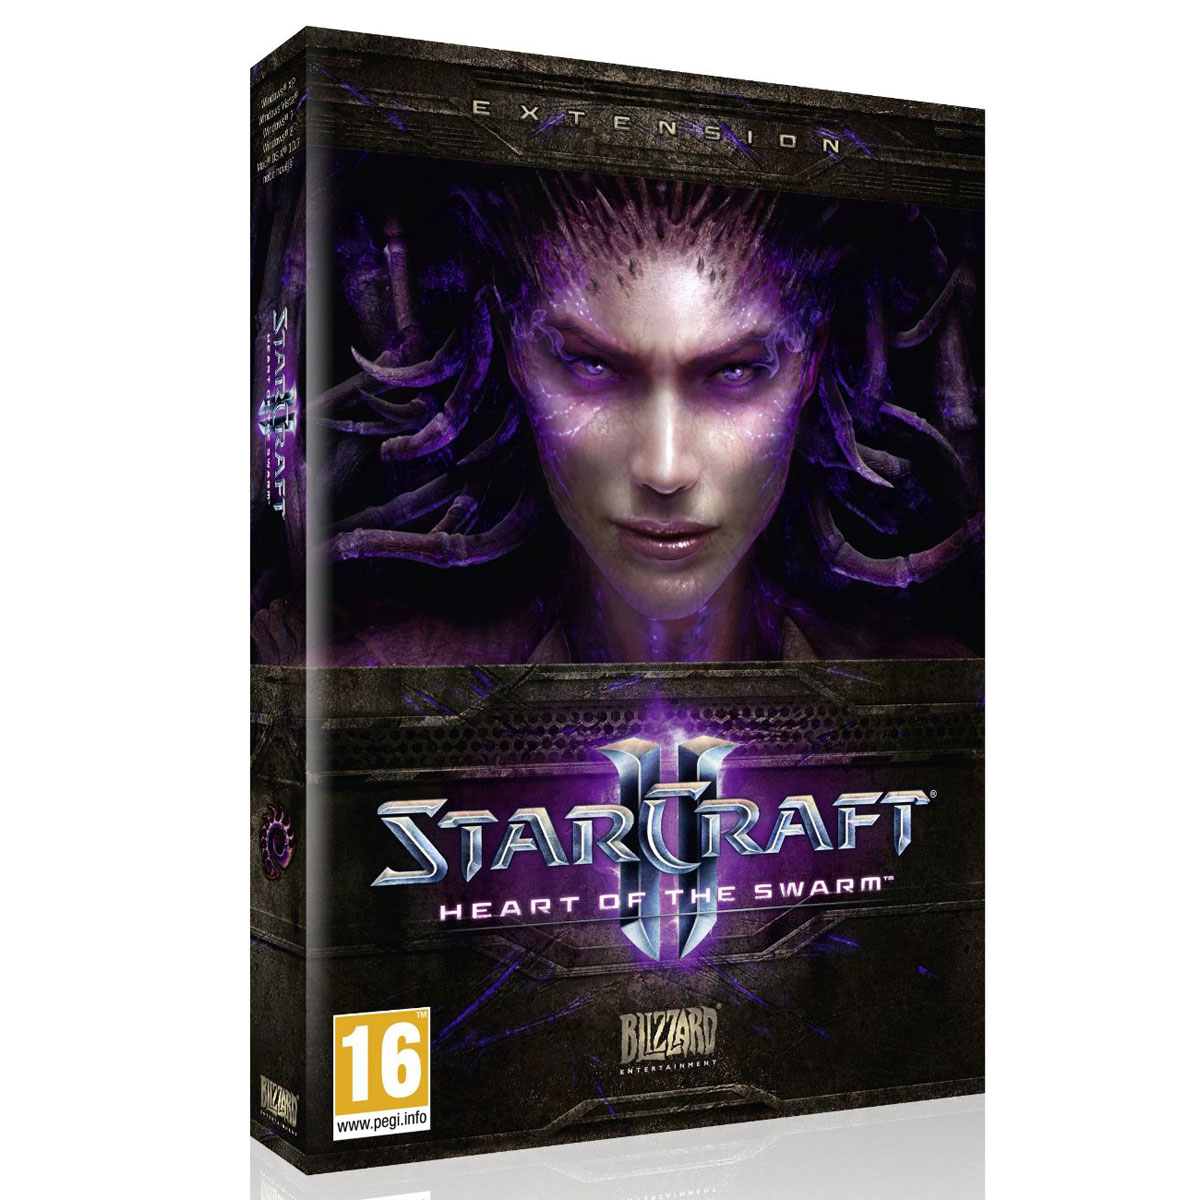 Jeux PC StarCraft II : Heart of the Swarm (PC/MAC) Extension pour StarCraft II